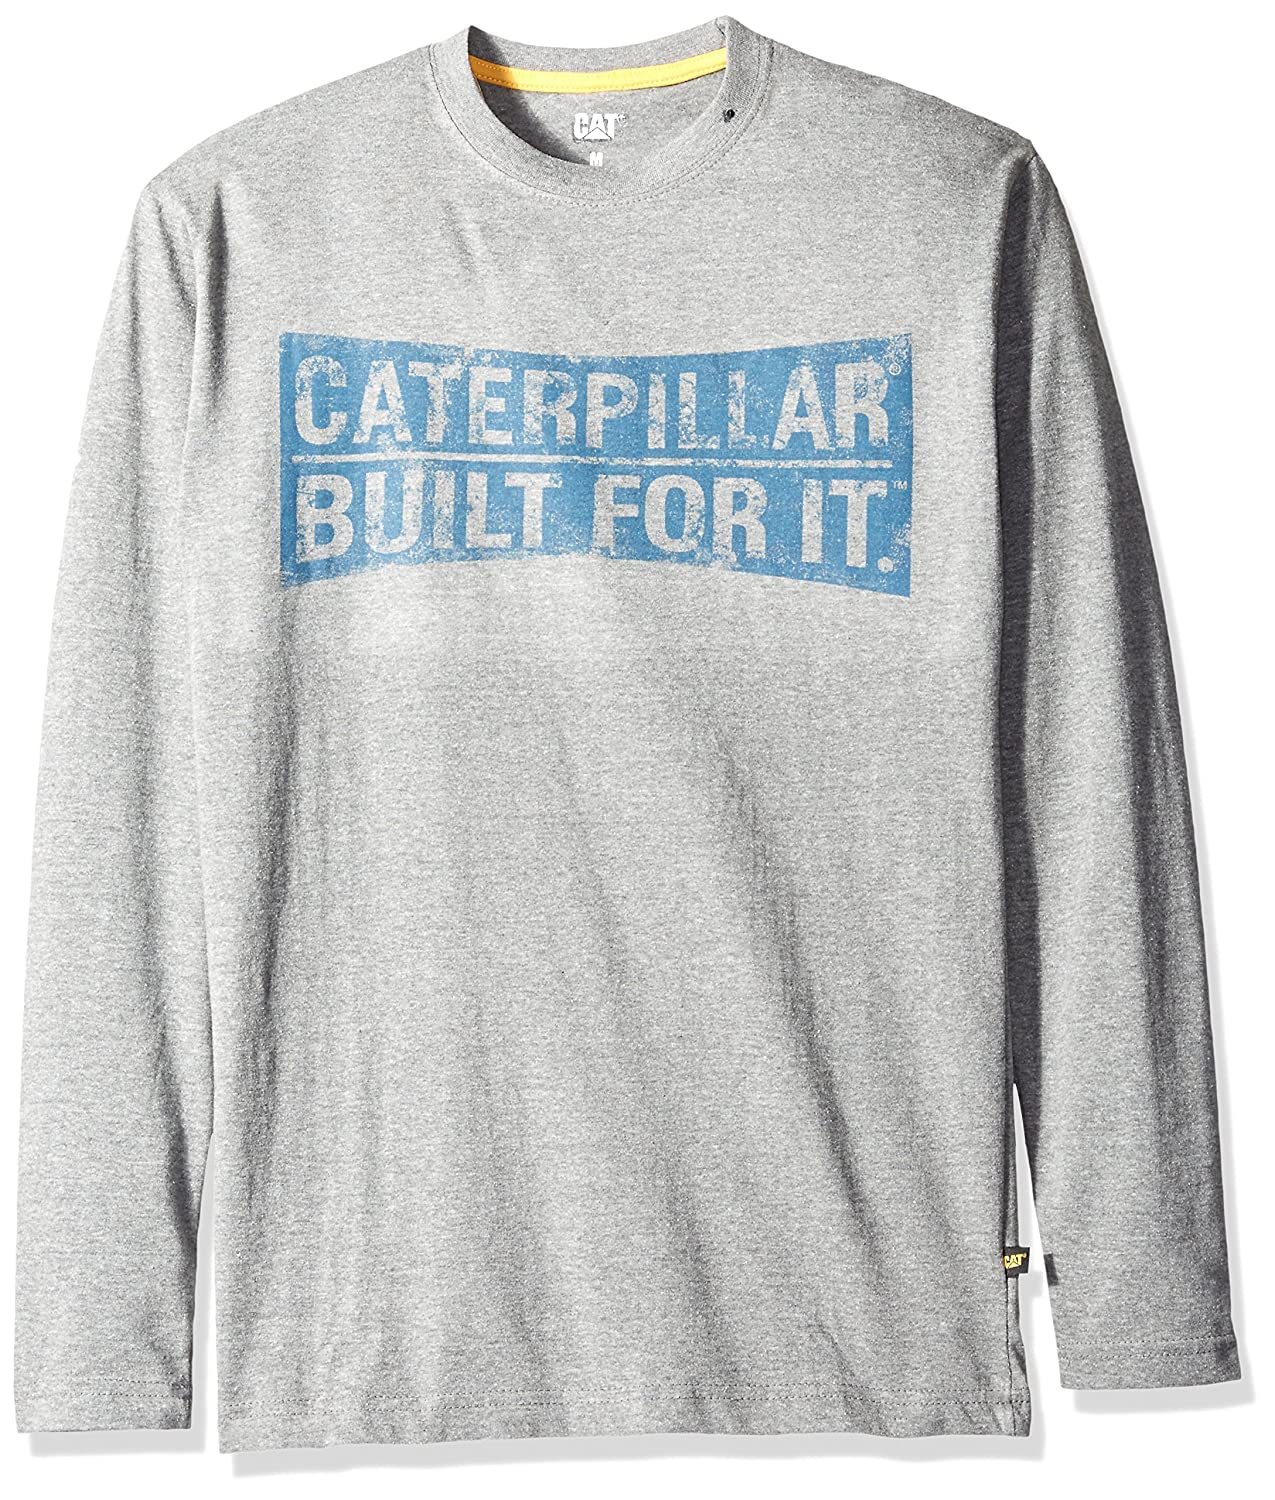 CAT Workwear Mens Curved Banner 100% Cotton Long Sleeve T-Shirt 1510264